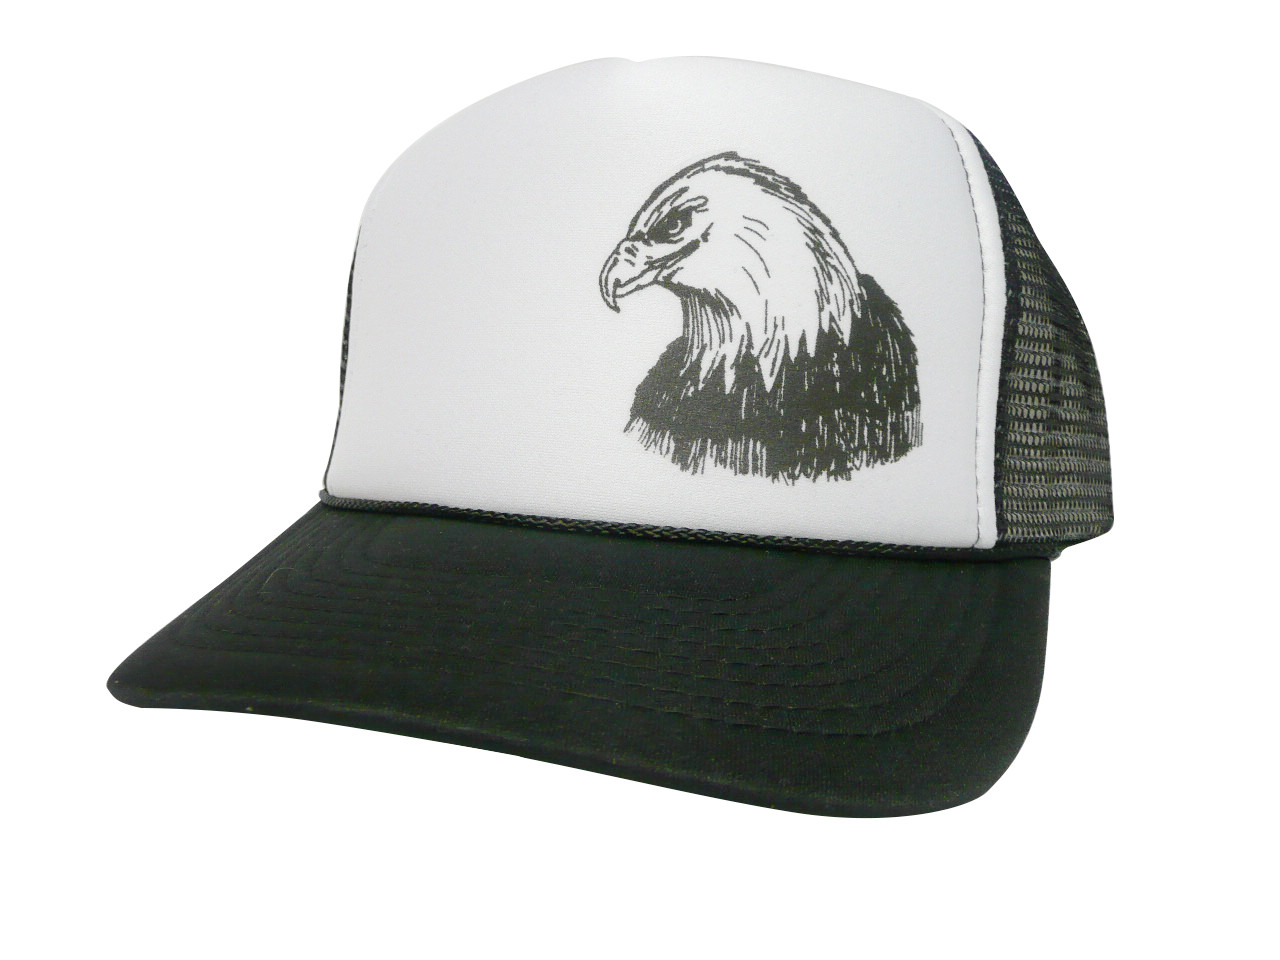 802832df59c ... Eagle head Trucker Hat Mesh Hat Snap back Hat. As shown in photo  Black white front